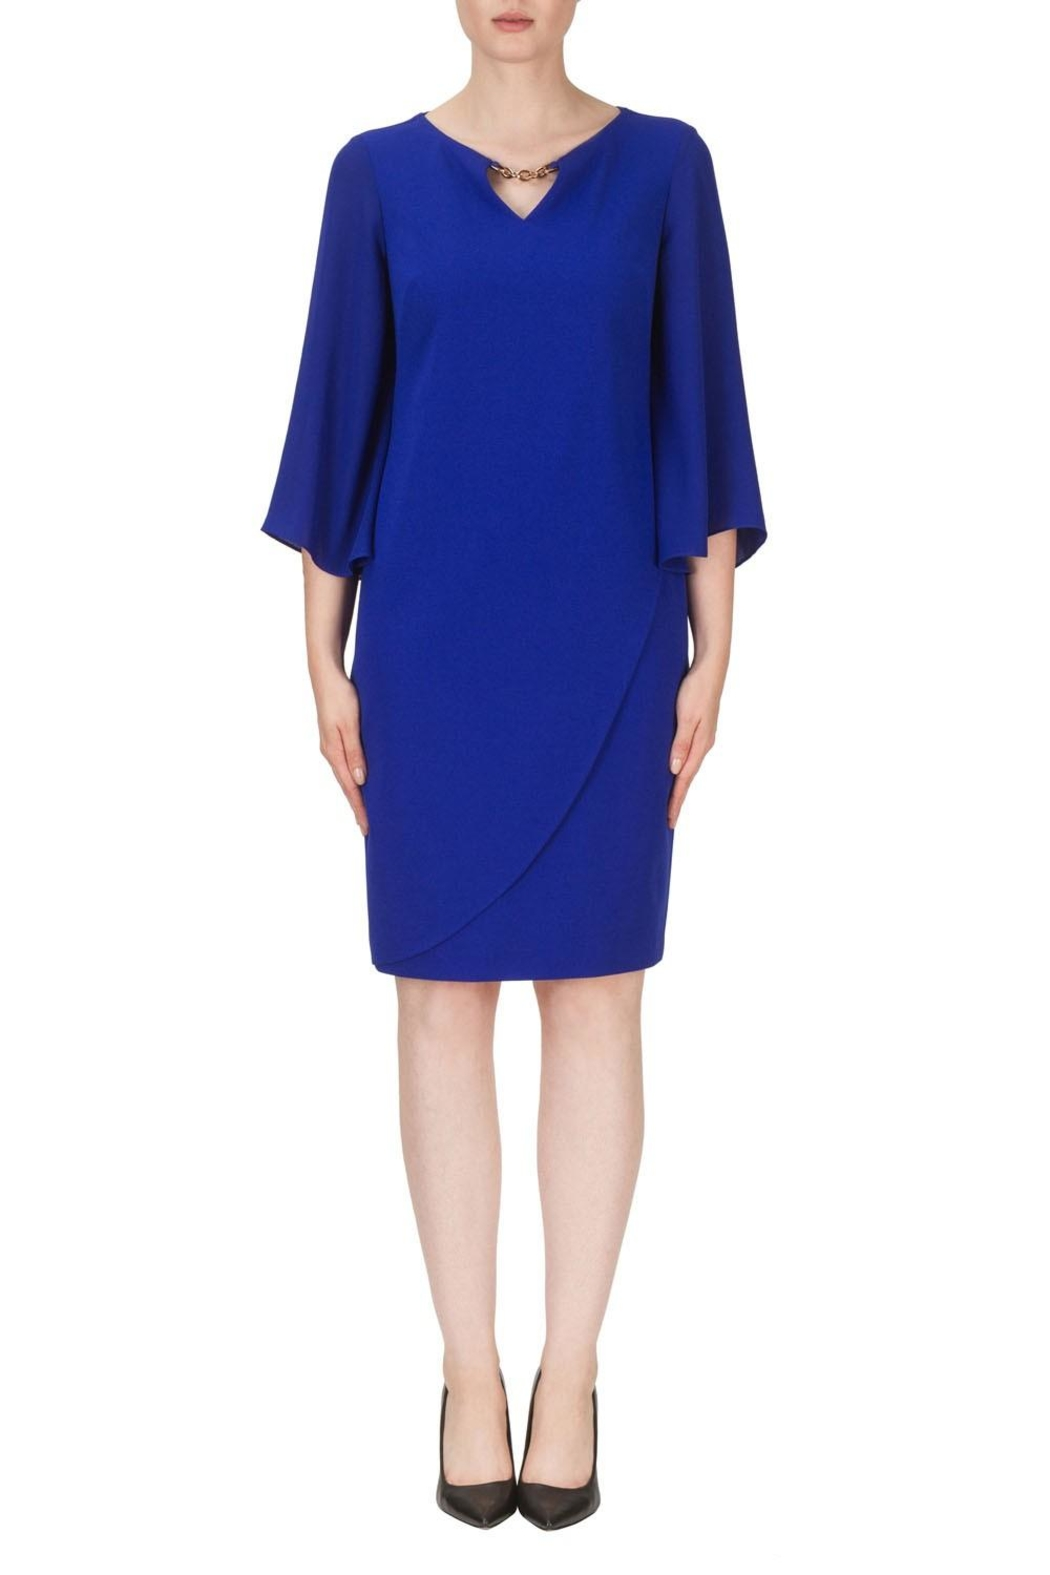 Joseph Ribkoff Blue Knee Length Dress - Main Image